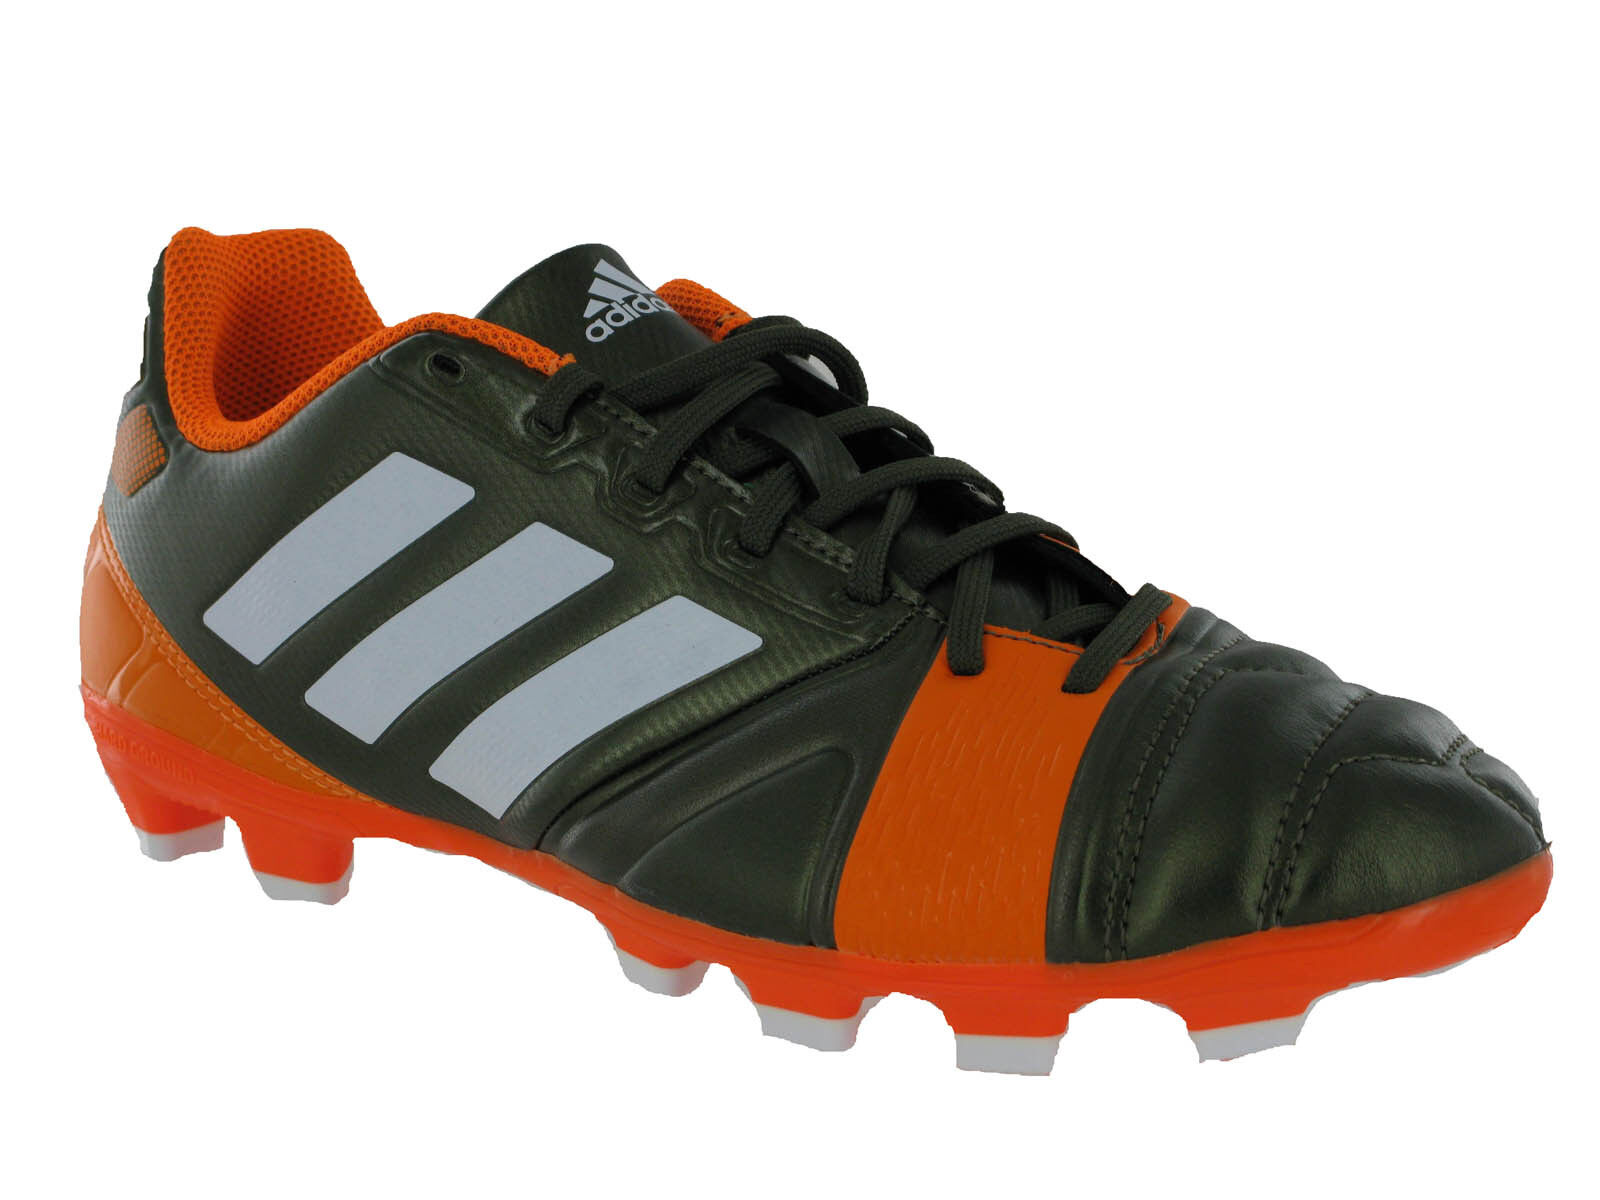 Adidas Nitrocharge 3.0 TRX HG Leather Lace Up Mens Football Boots Trainers